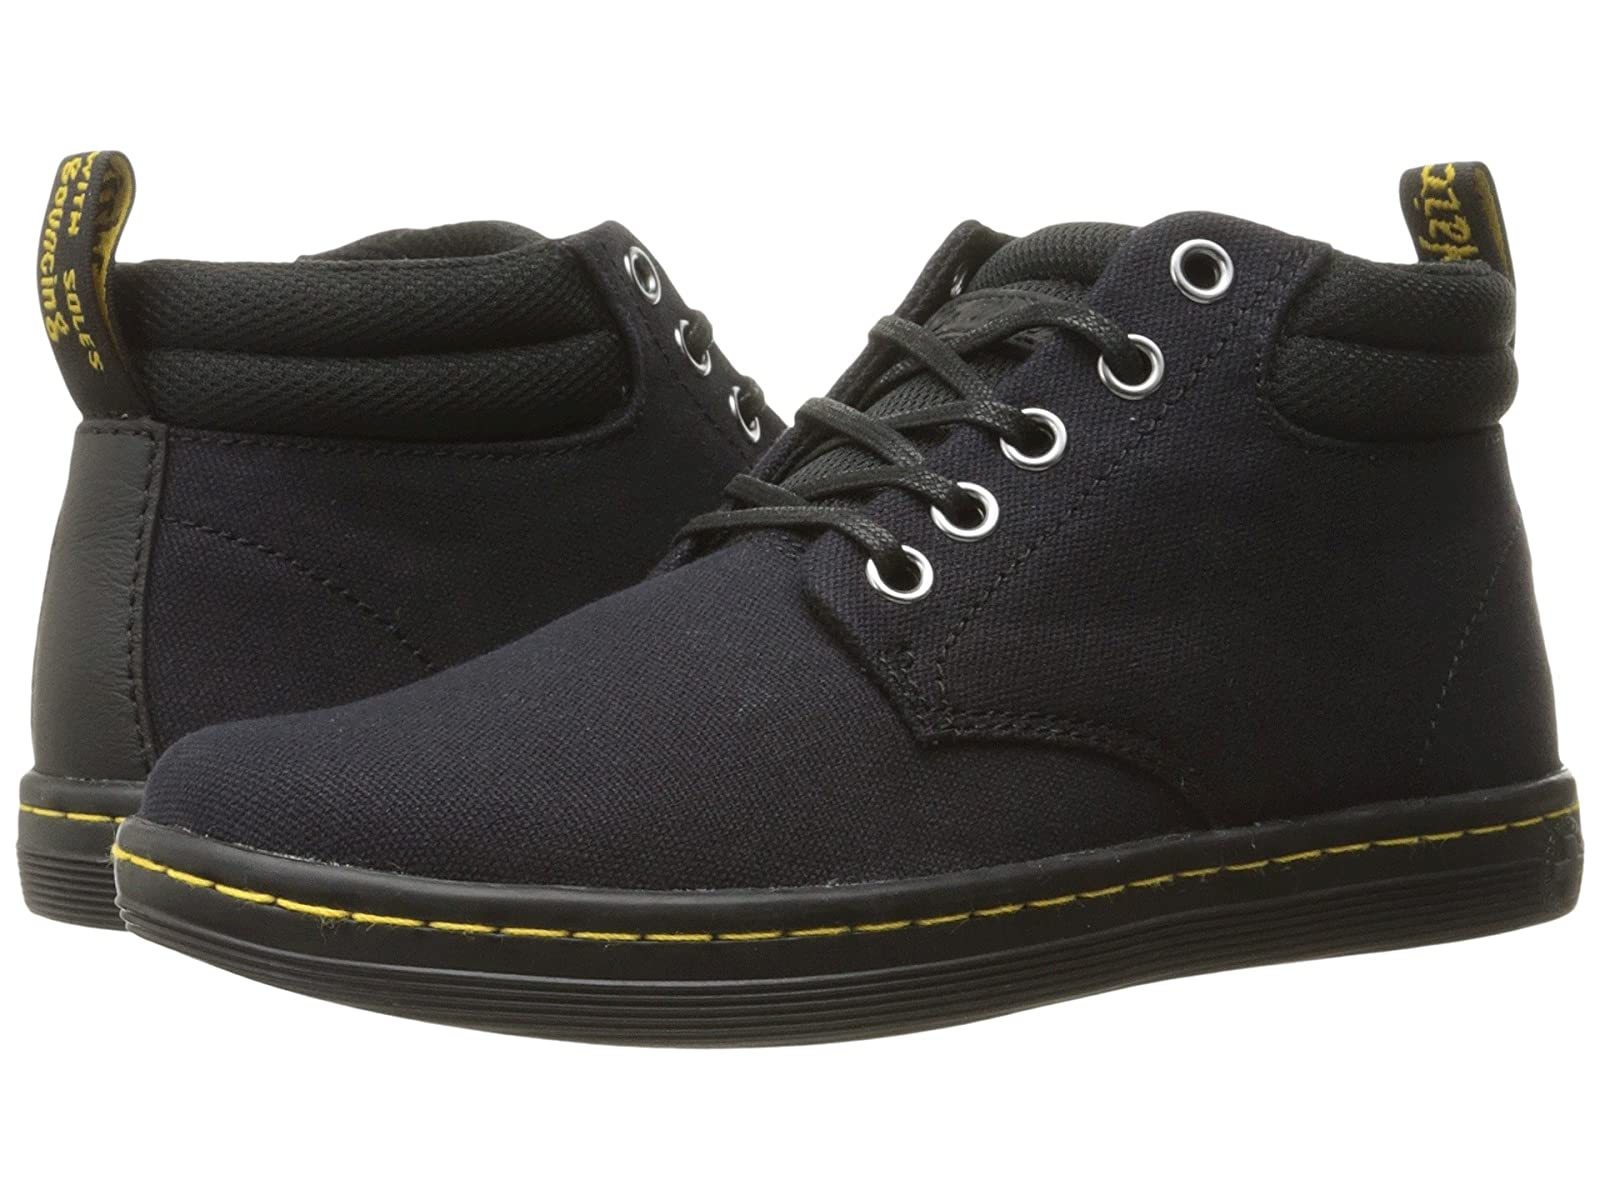 Dr. Martens BelmontCheap and distinctive eye-catching shoes